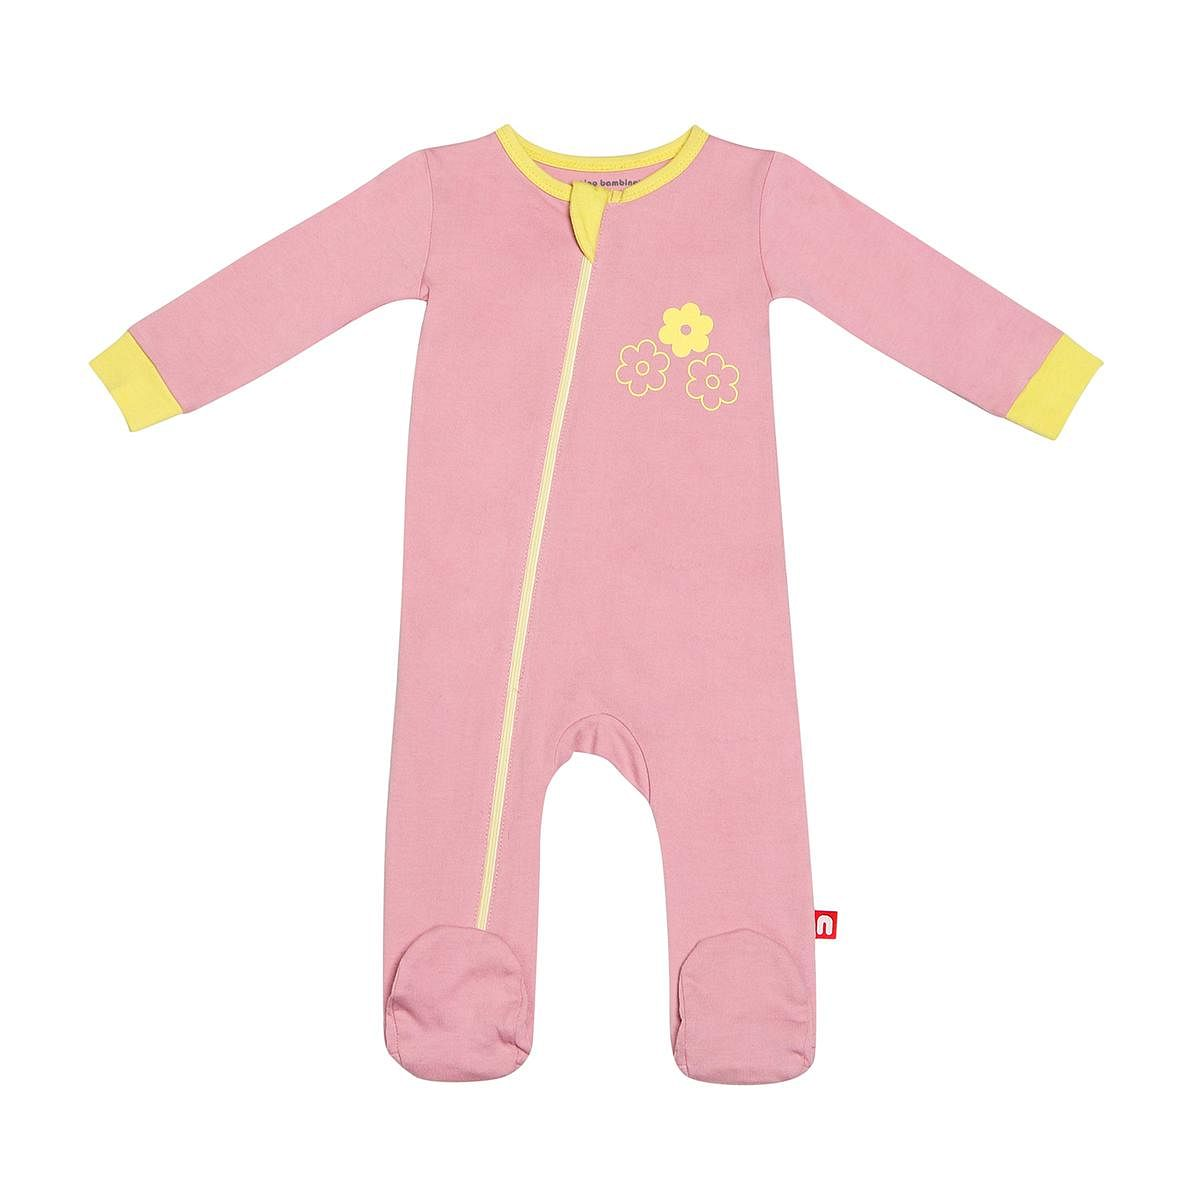 Nino Bambino - Pink Colored 100% Organic Cotton Romper For Infants